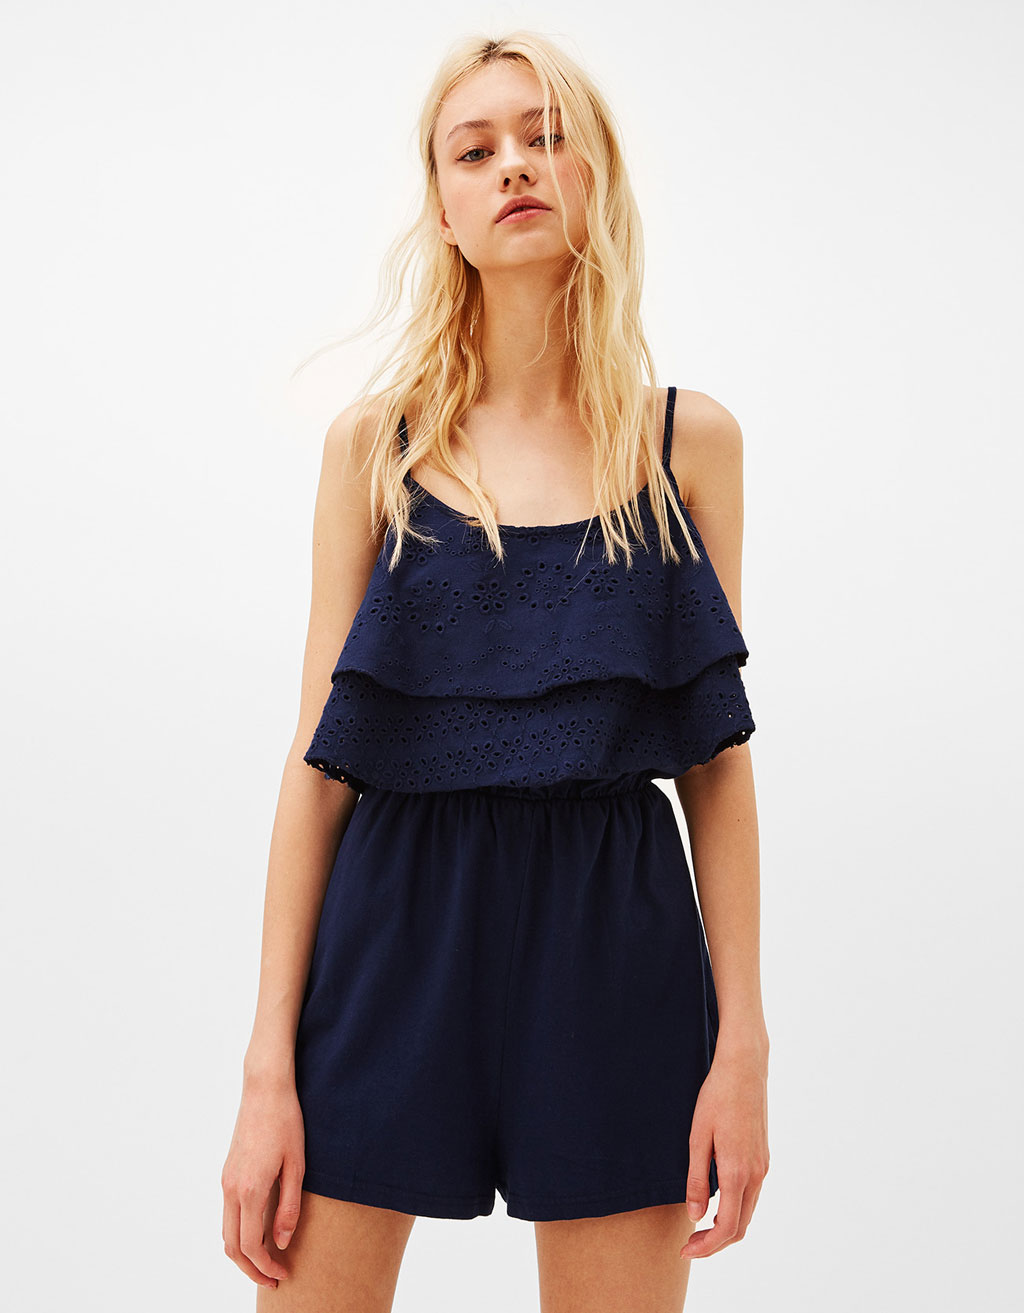 Strappy jumpsuit with open knit ruffle